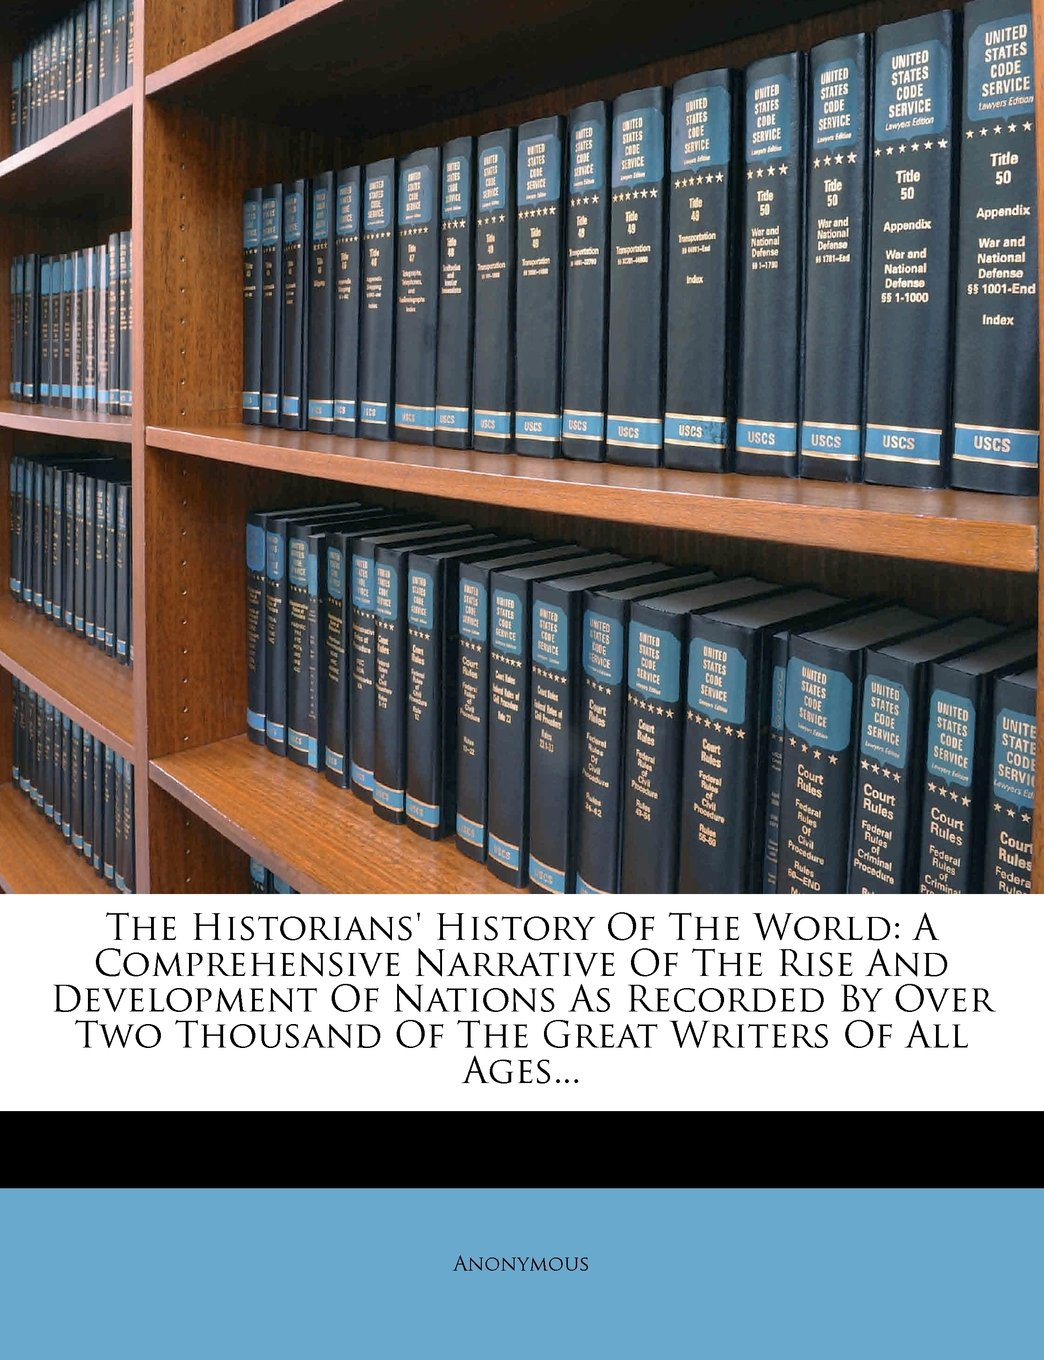 Read Online The Historians' History Of The World: A Comprehensive Narrative Of The Rise And Development Of Nations As Recorded By Over Two Thousand Of The Great Writers Of All Ages... PDF